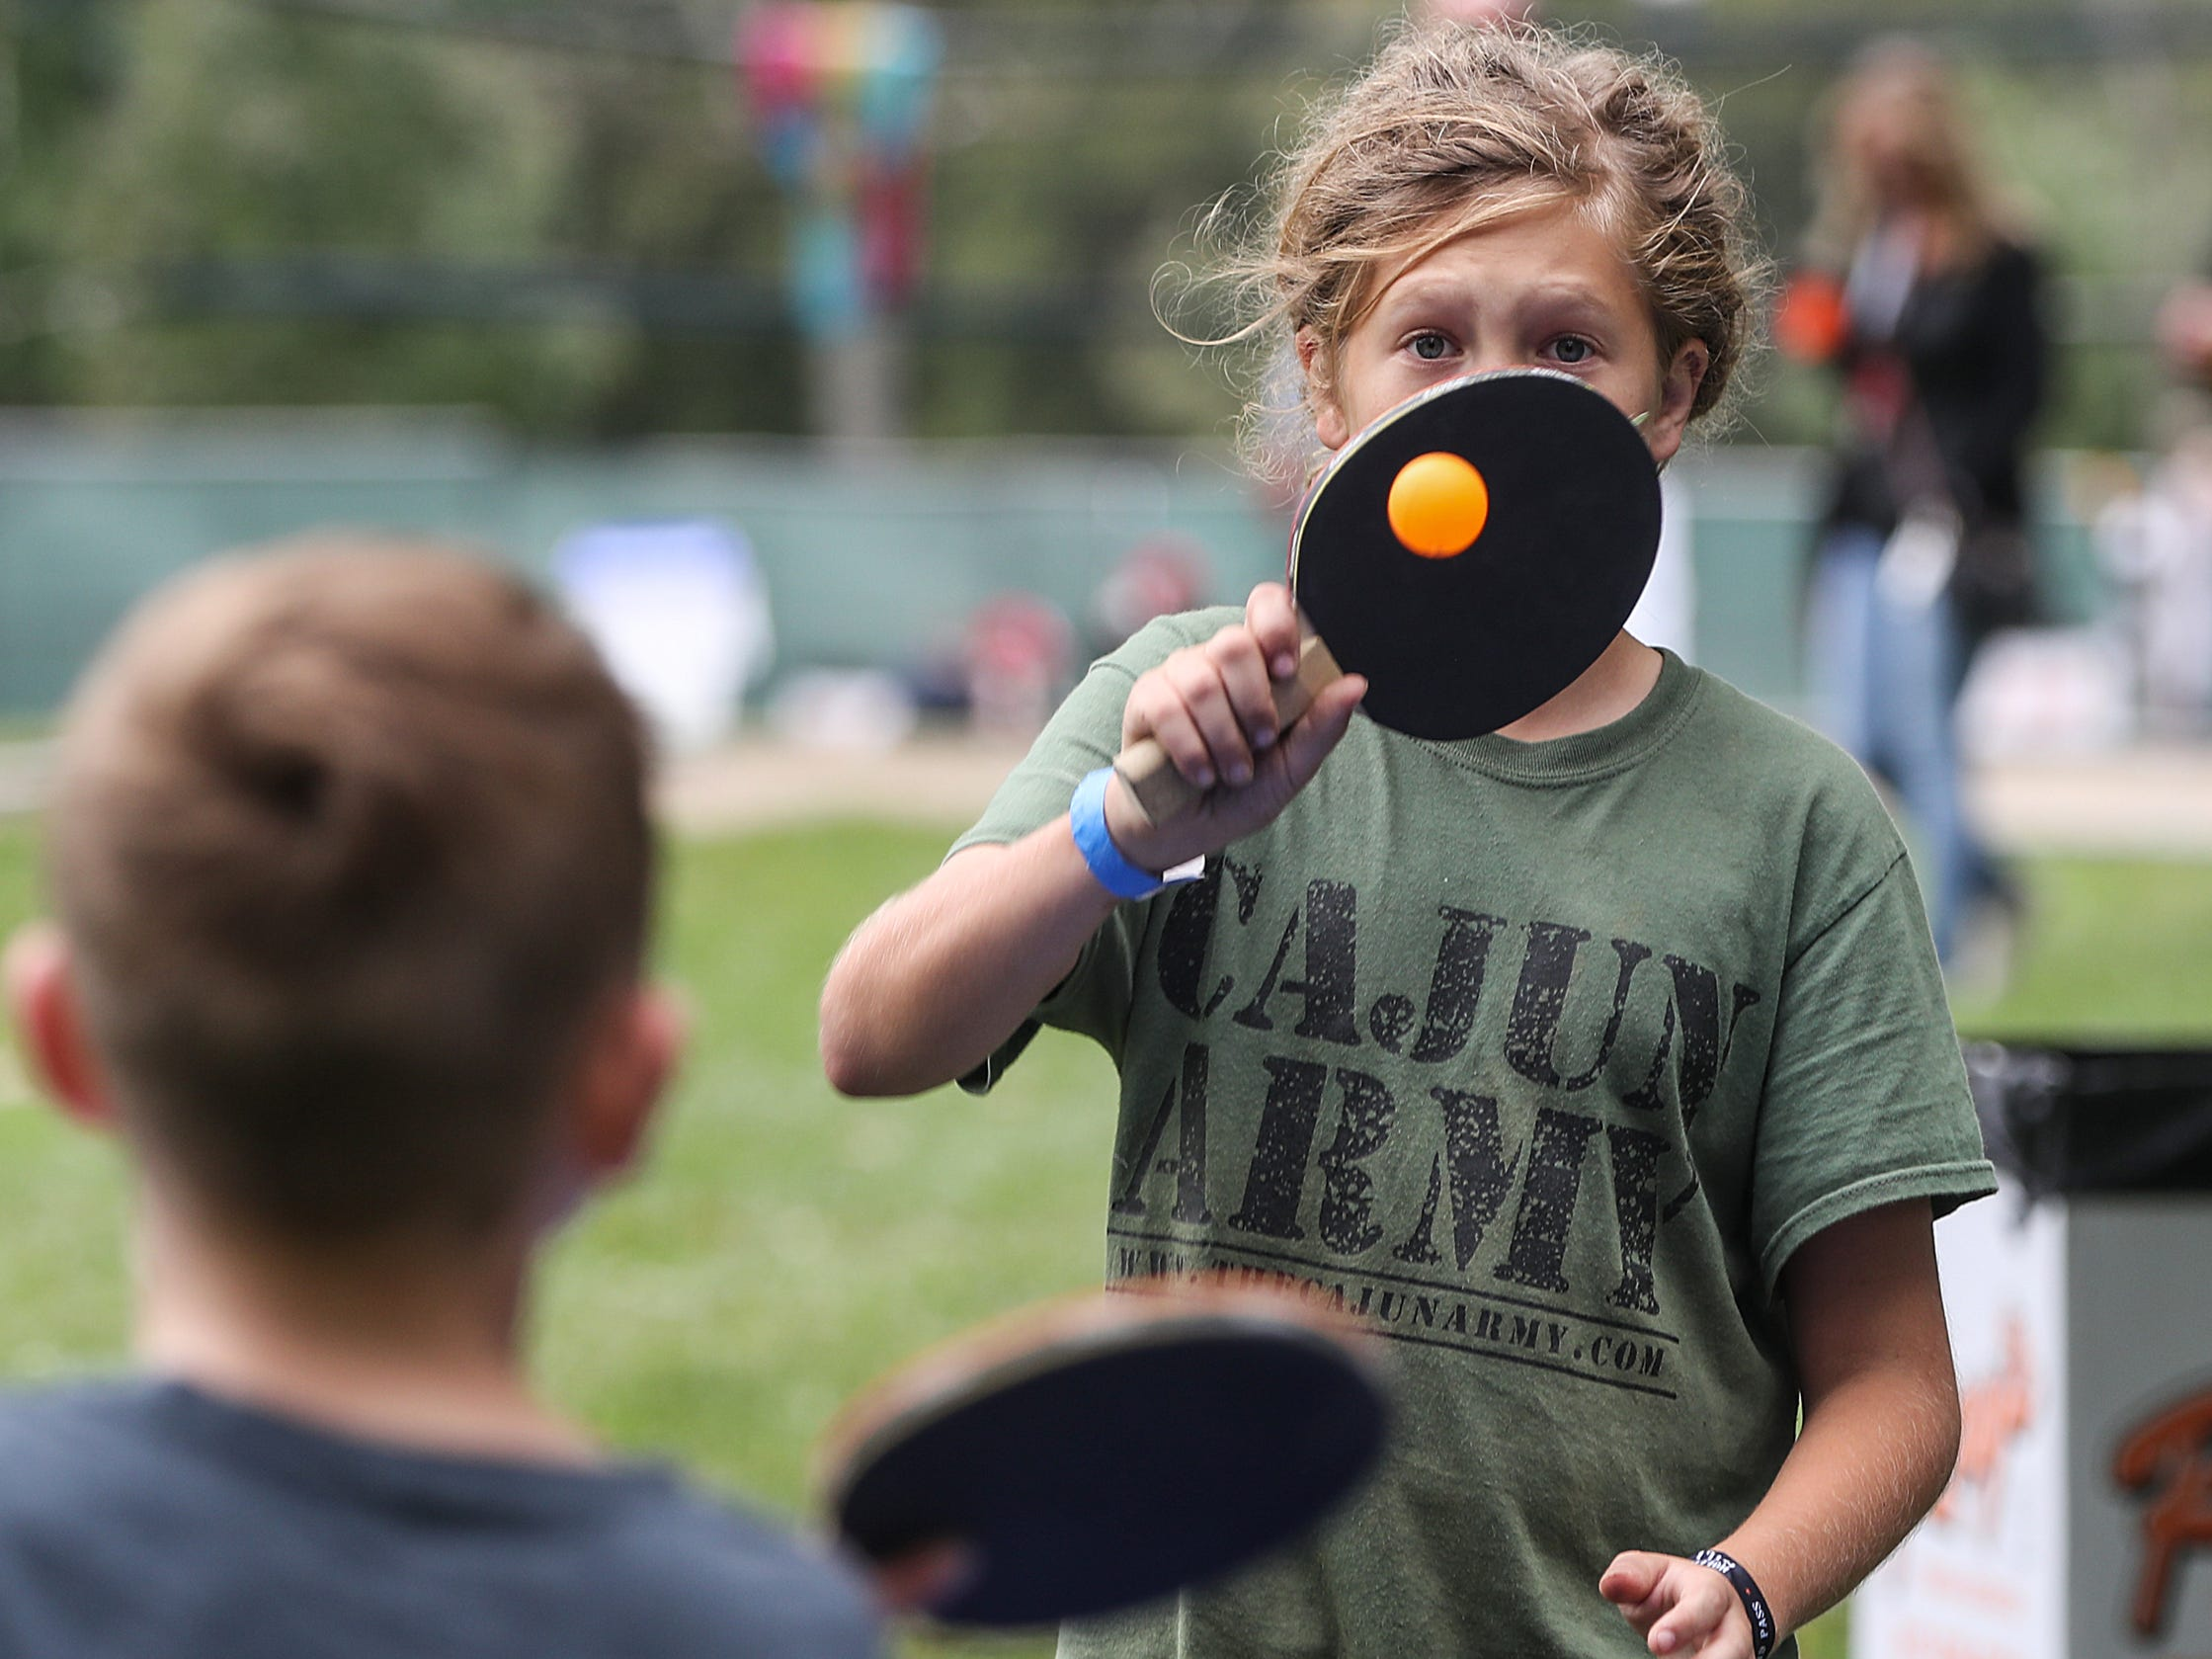 Justus Cray, 12, plays ping pong with a friend during the inaugural Holler on the Hill music festival at Garfield Park in Indianapolis, Saturday, Sept. 22, 2018.